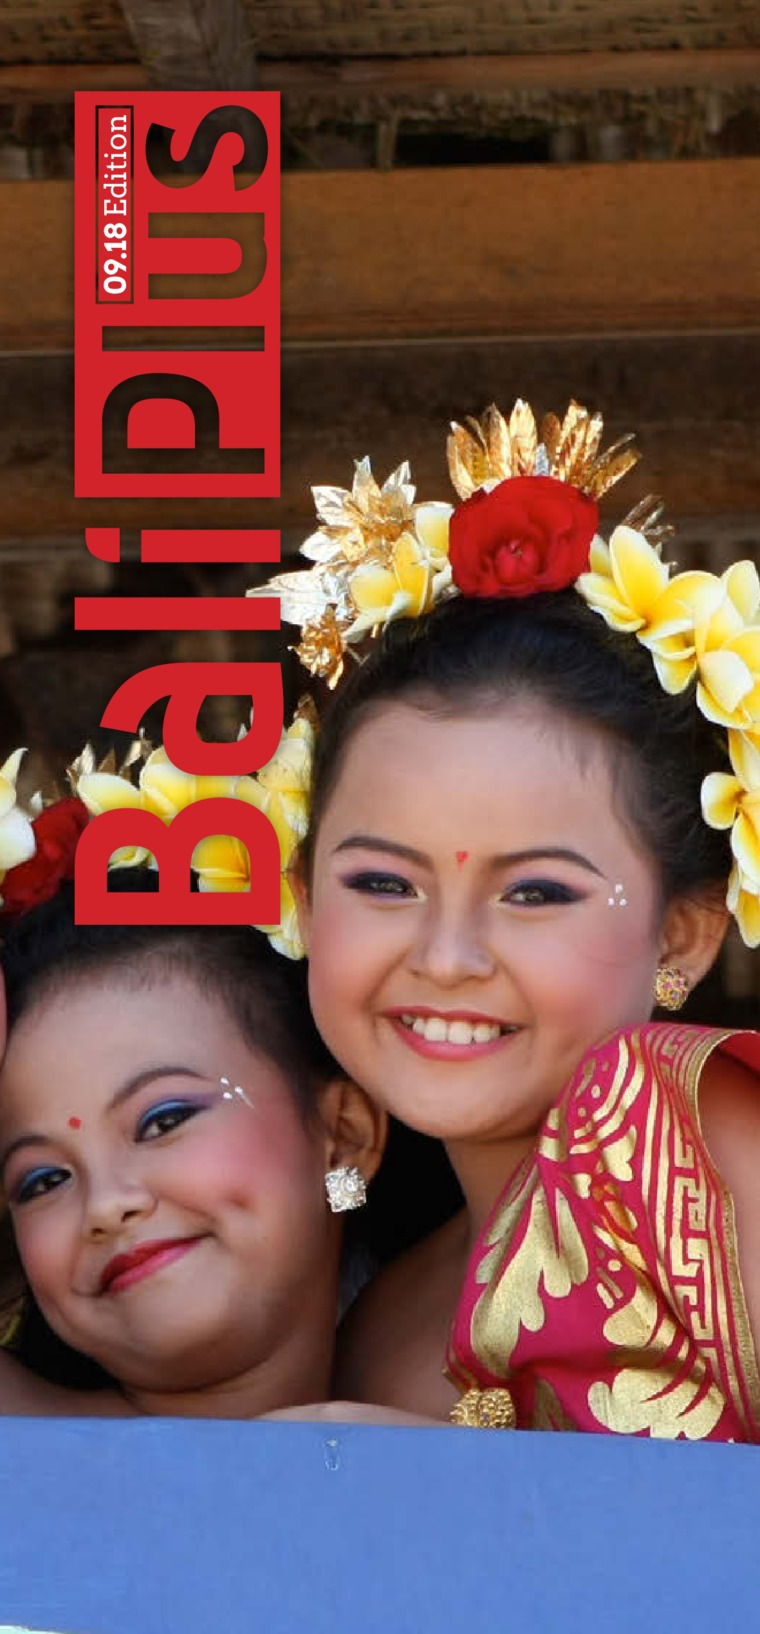 Majalah Digital BALI PLUS September 2018